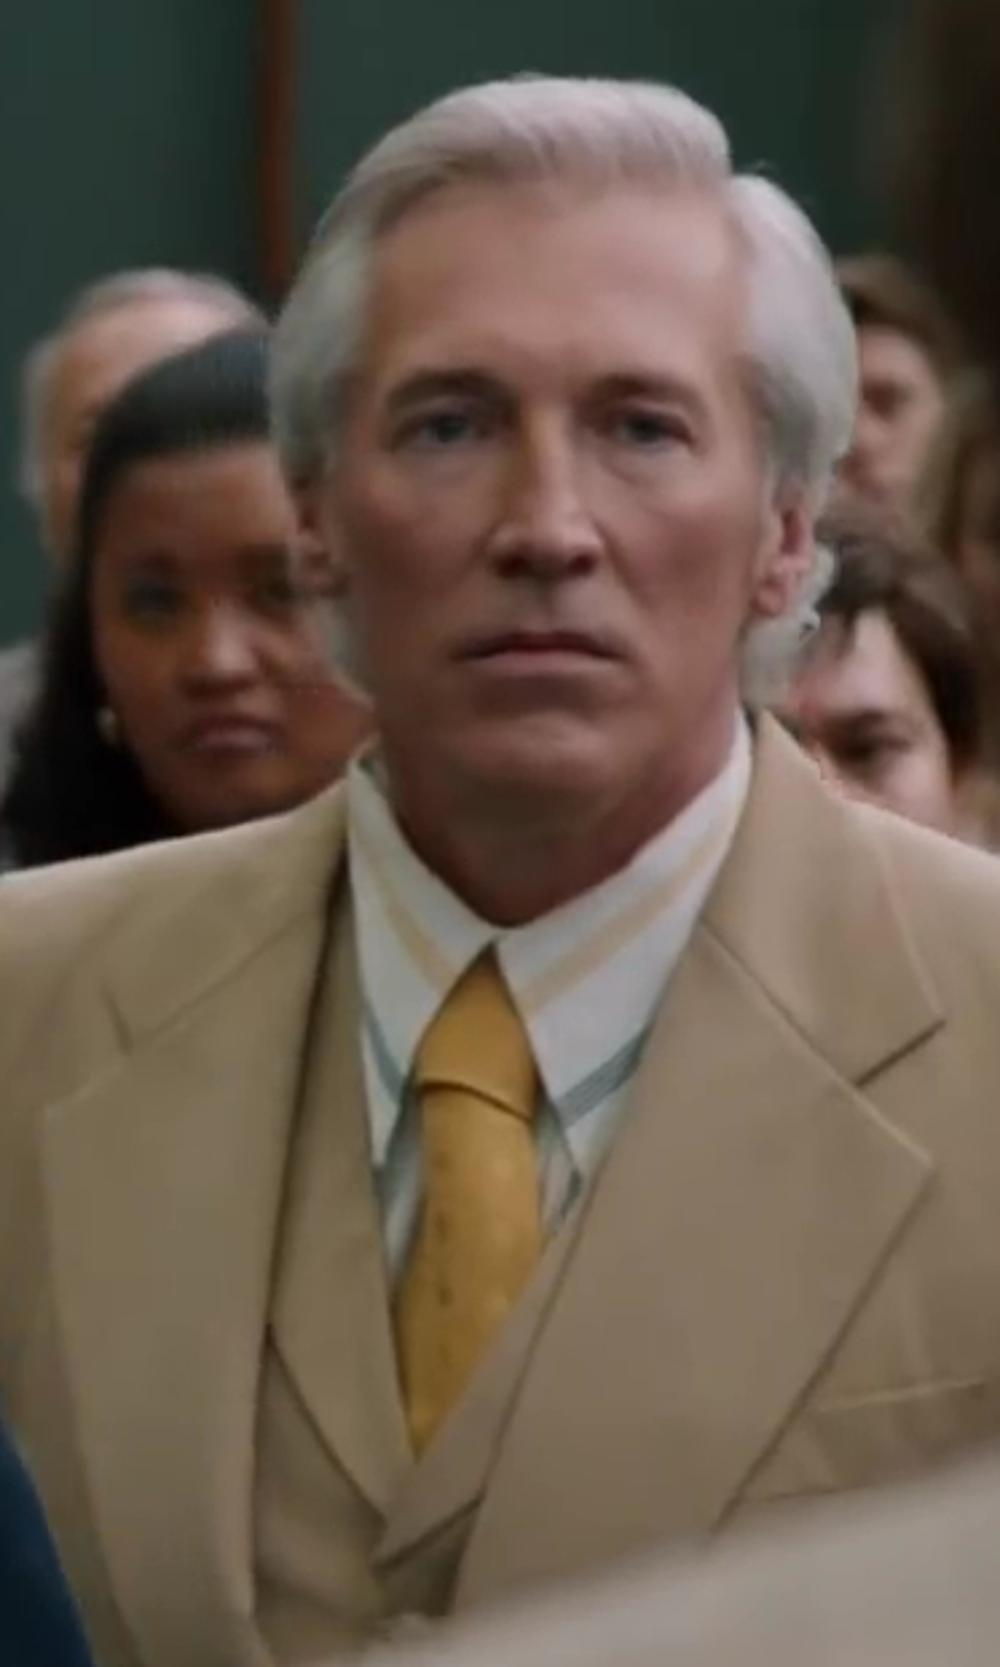 Fred Galle with Donald J. Trump Tahitian Pearl Extra Long Tie in Anchorman 2: The Legend Continues